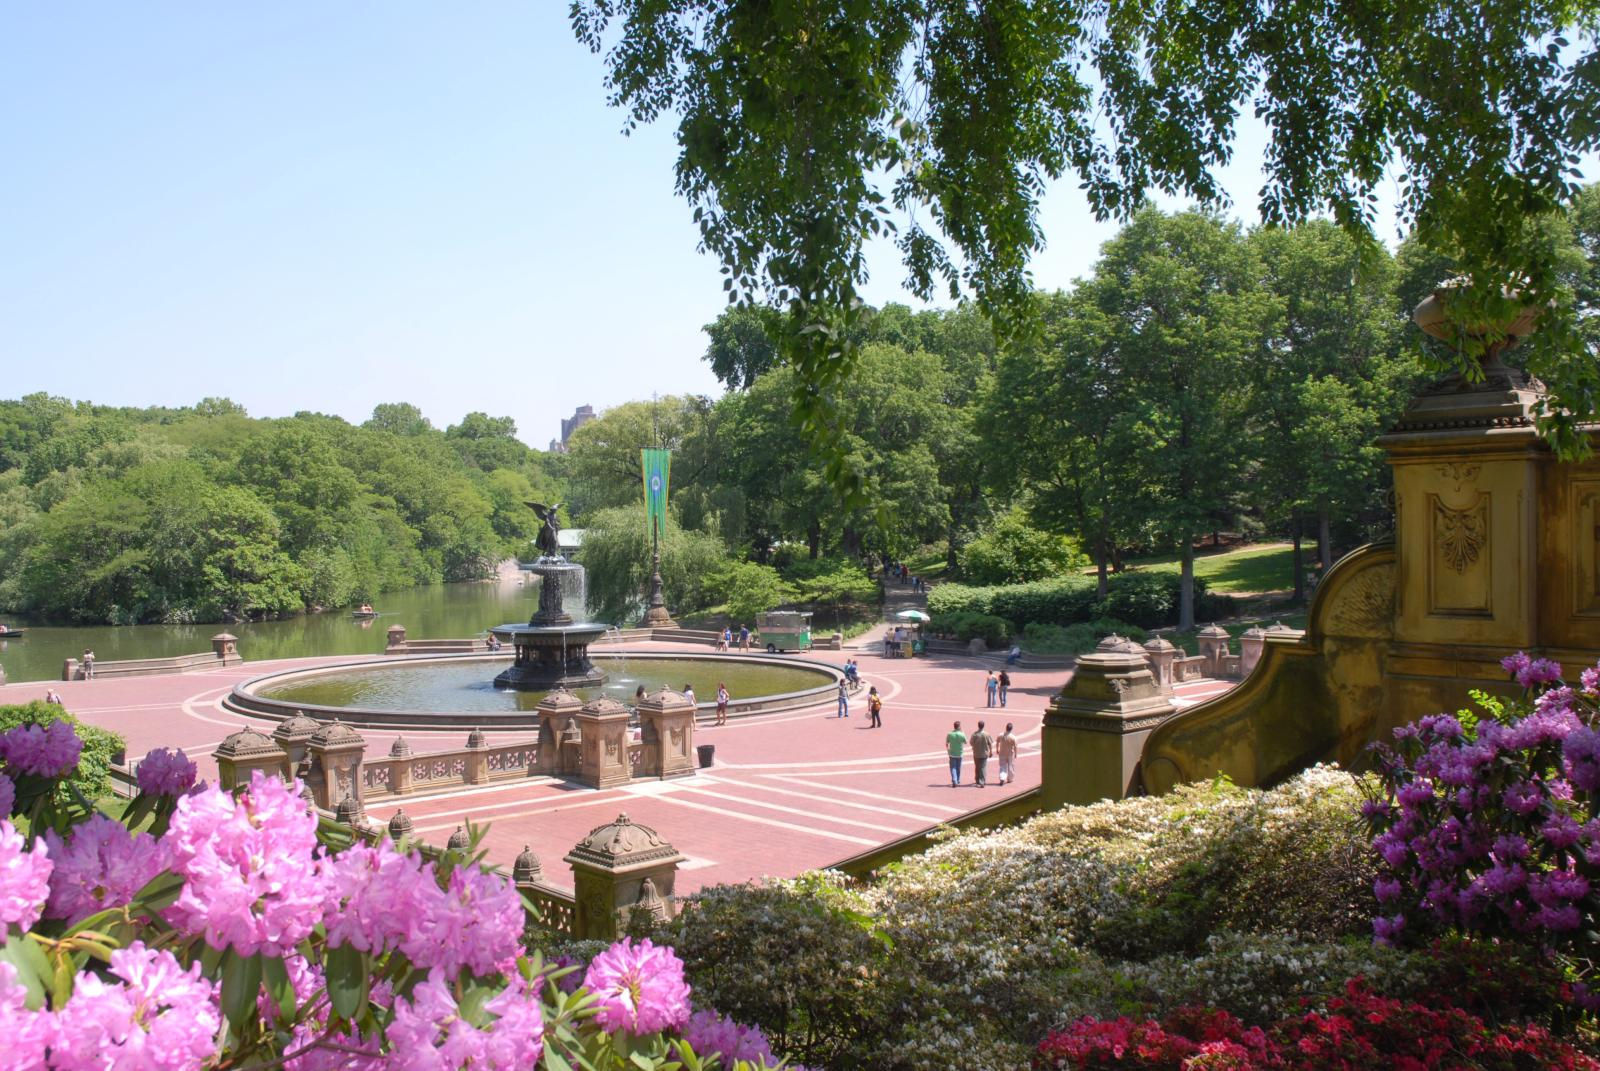 Bethesda Terrace and Fountain.Courtesy of the Central Park Conservancy